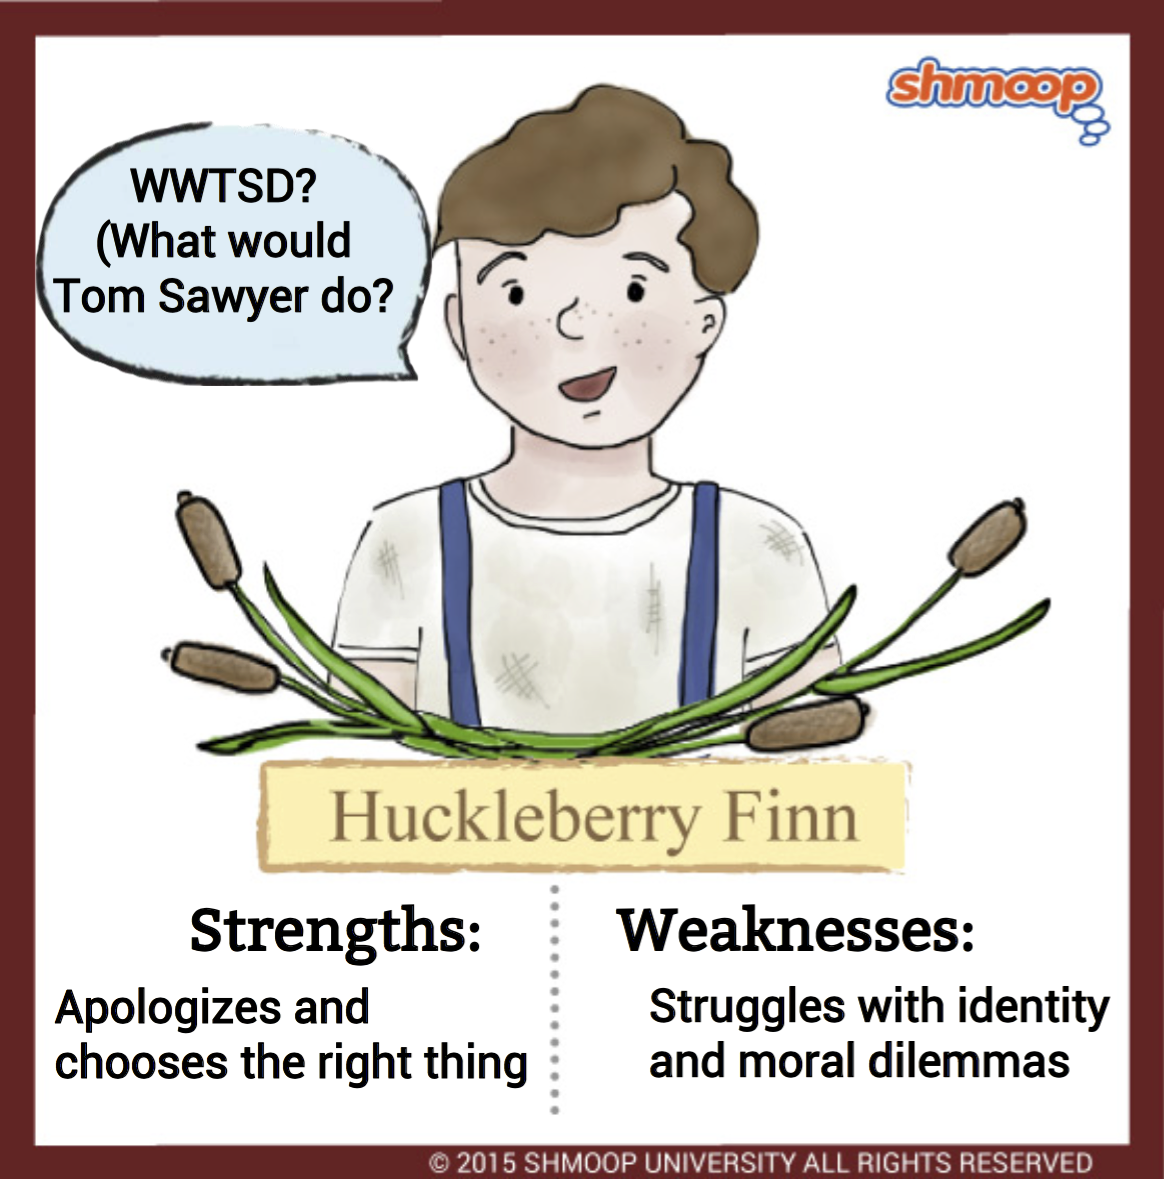 huck finn essay jim Online the adventures of huckleberry finn essay example also from jim huck learns the moral rules, which should be followed in various life situations.